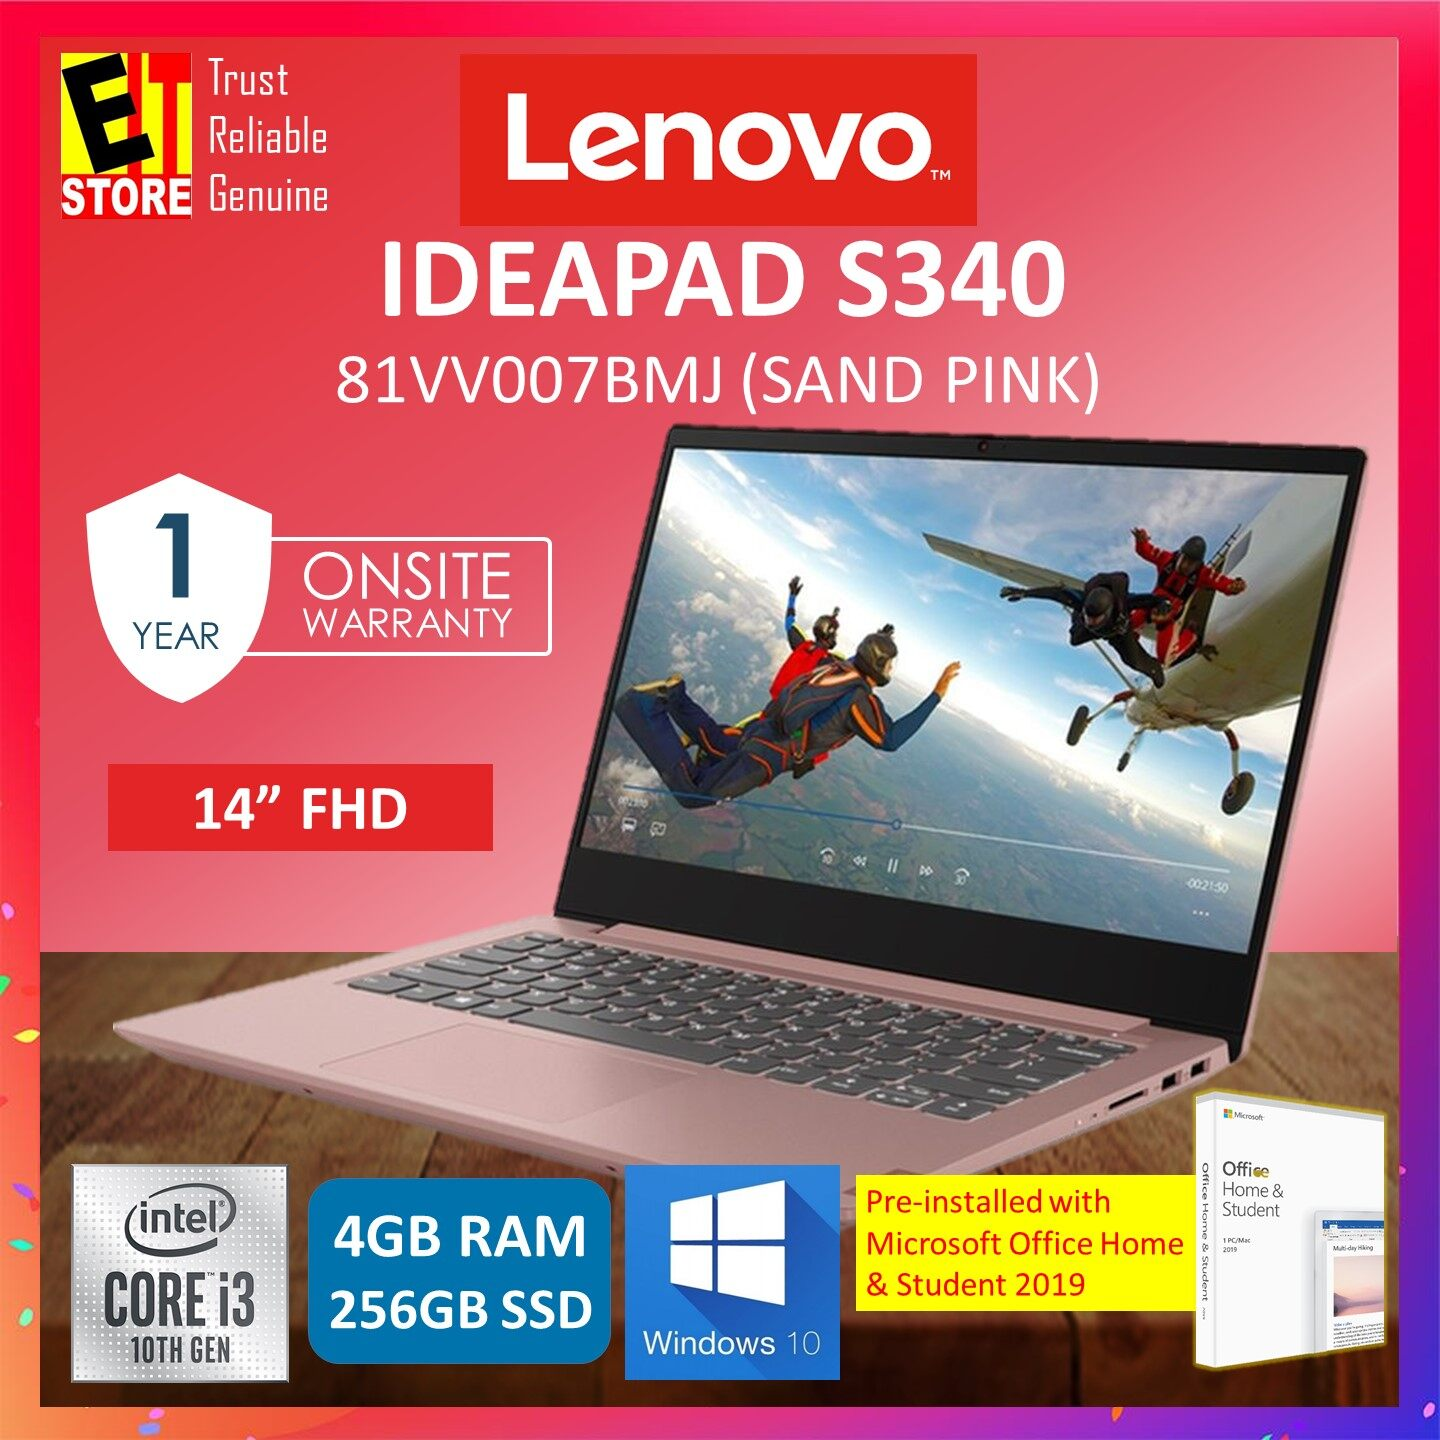 LENOVO IDEAPAD S340-14IIL 81VV007BMJ LAPTOP (SAND PINK) I3-1005G1/4GB/256GB SSD/14 FHD/INTEL/W10/ MICROSOFT OFFICE HOME & STUDENT Malaysia